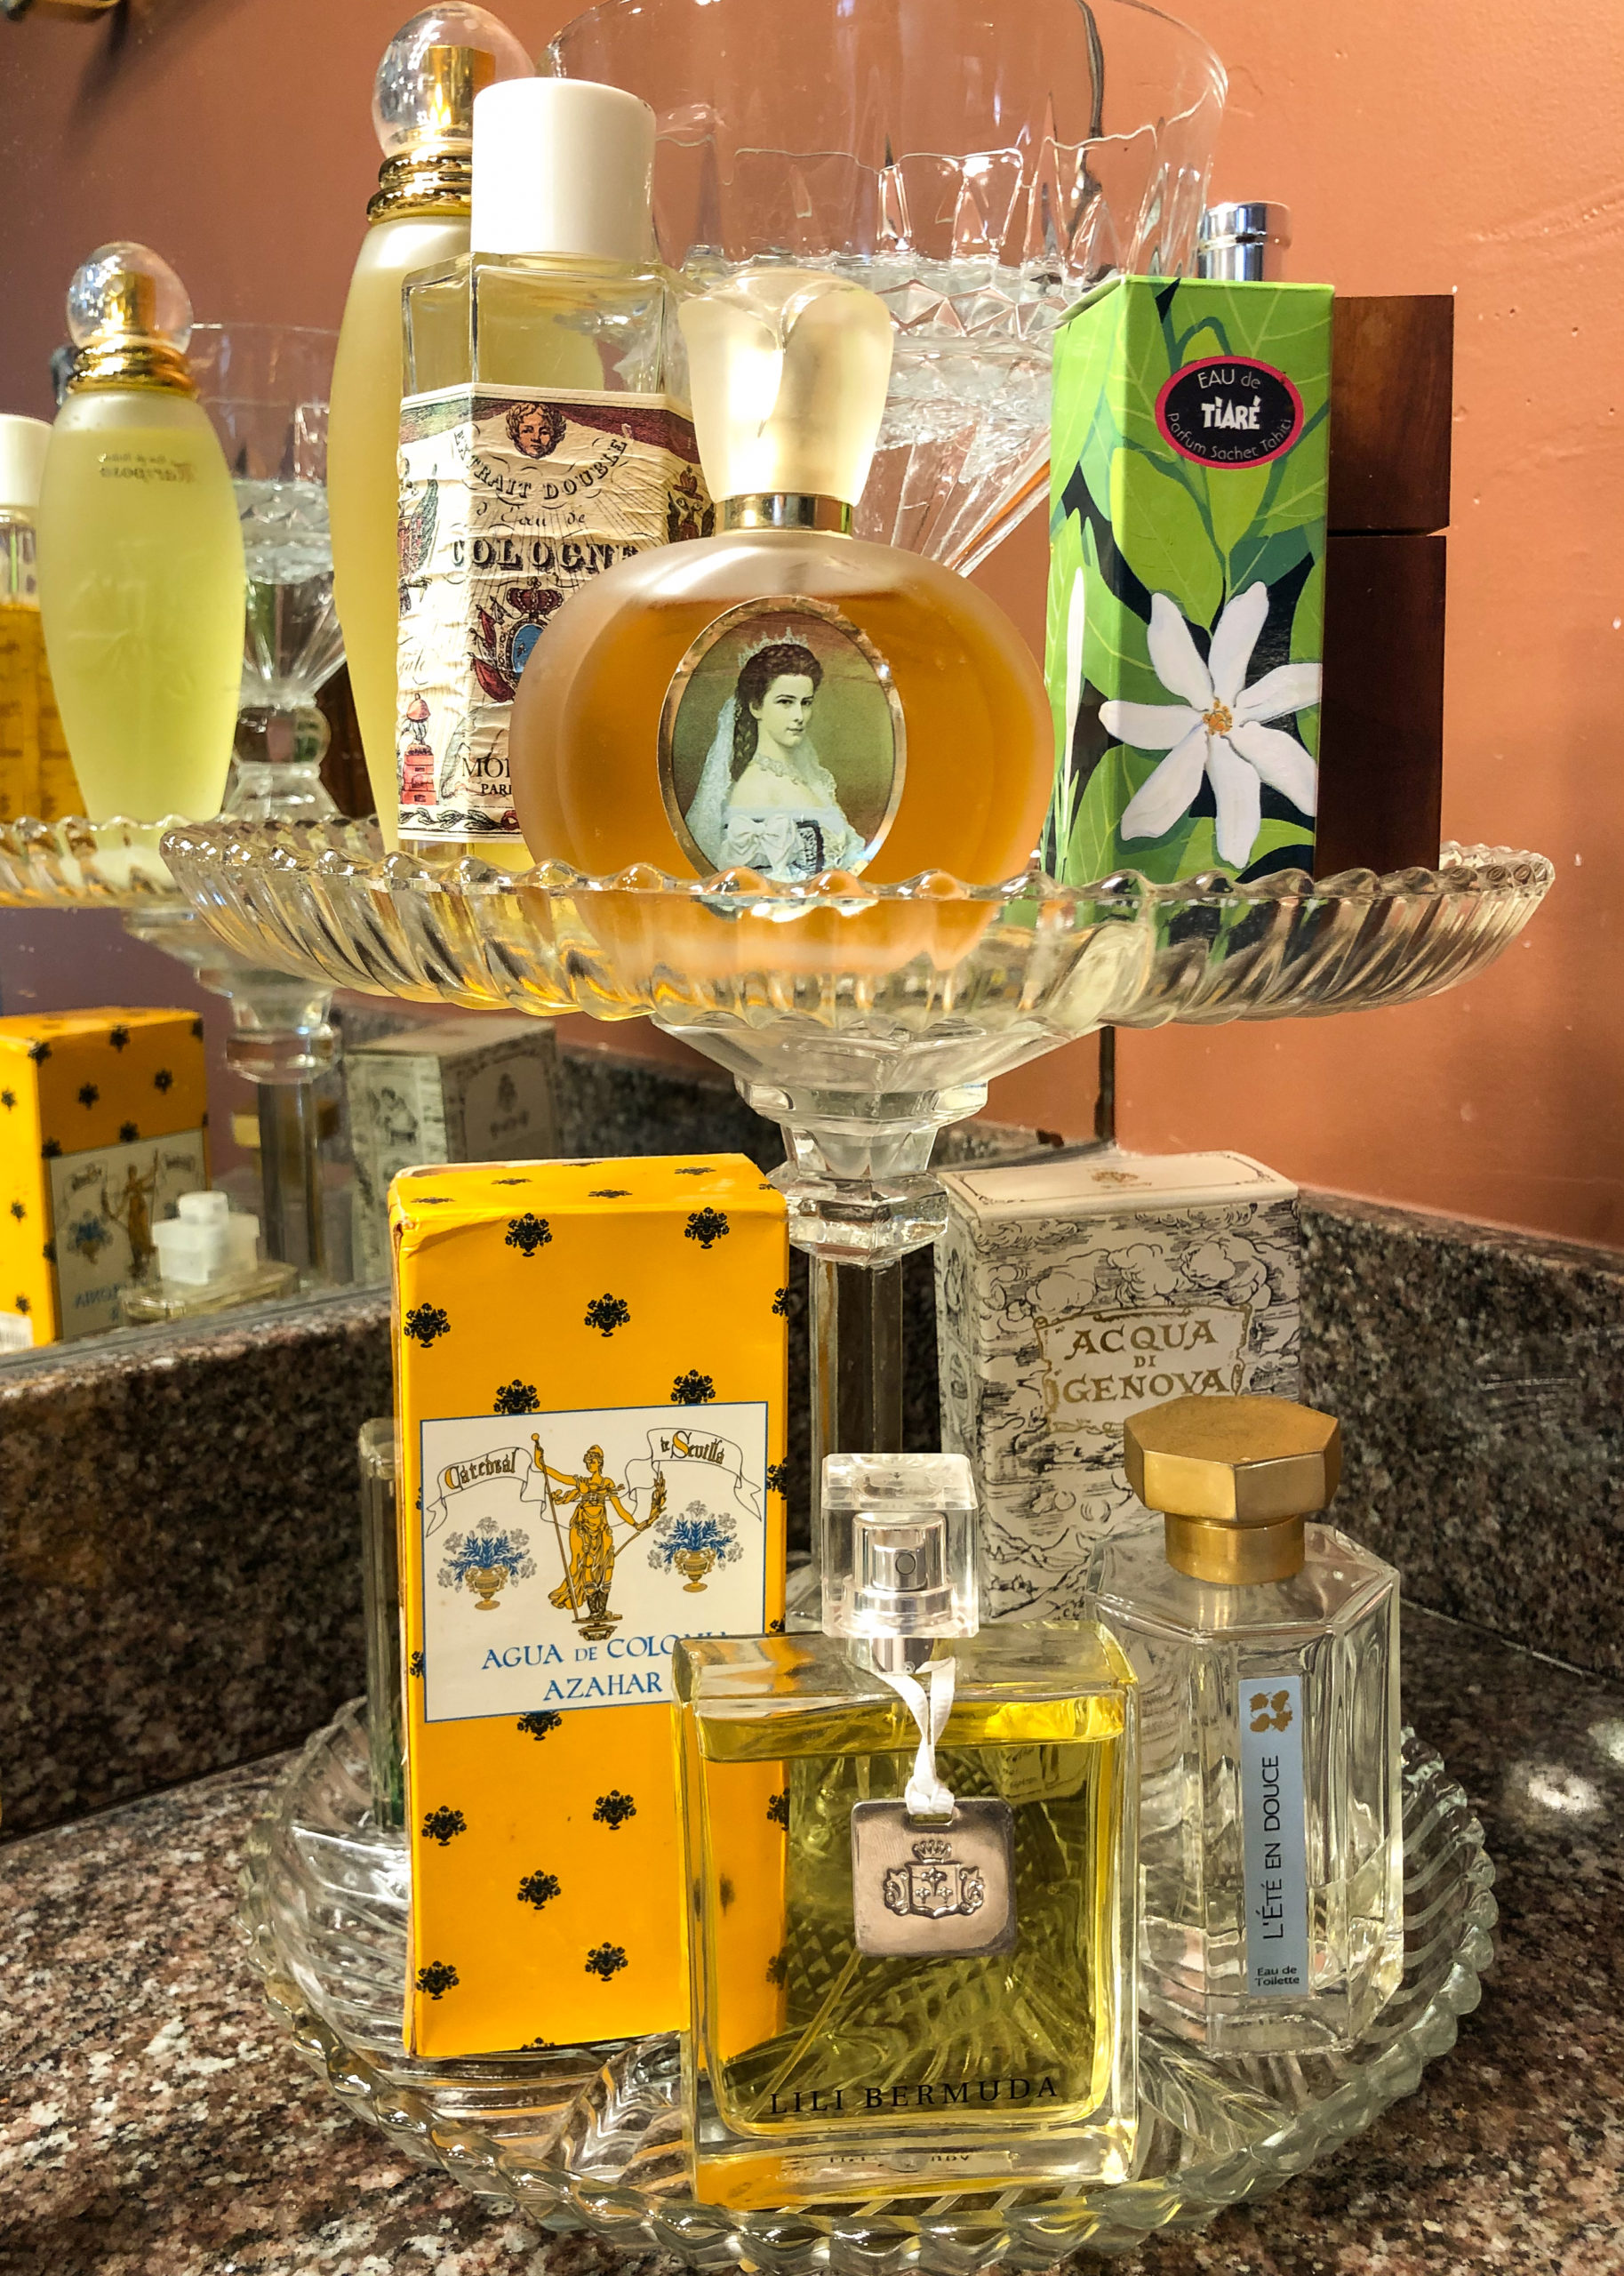 Perfumes to decorate your home with travel souvenirs